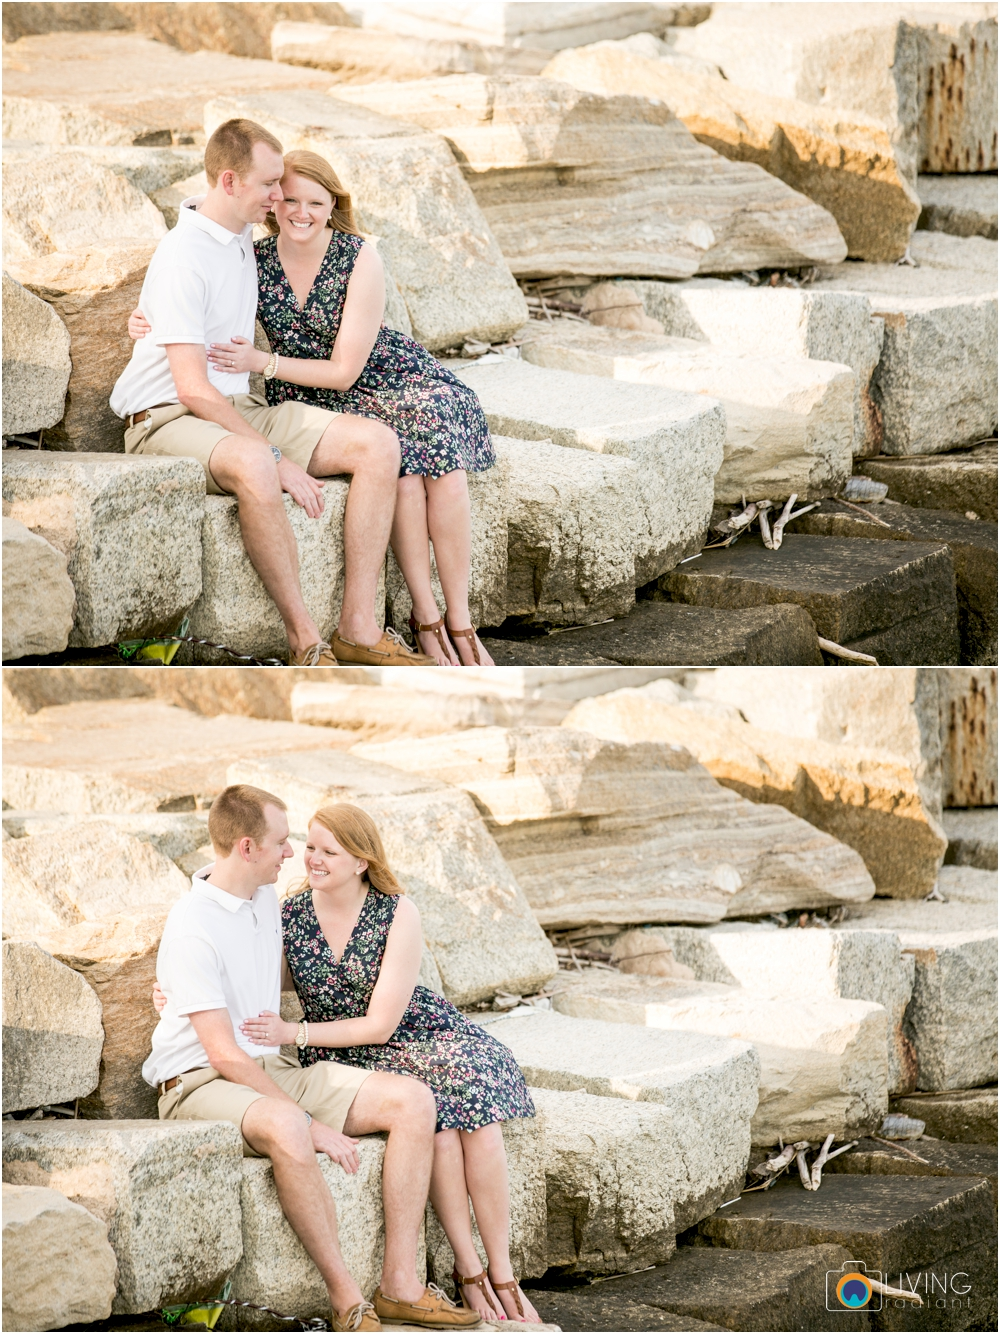 casey-clark-engaged-annapolis-downtown-naval-academy-engagement-session-living-radiant-photography-maggie-patrick-nolan-outdoor-water-boats_0033.jpg